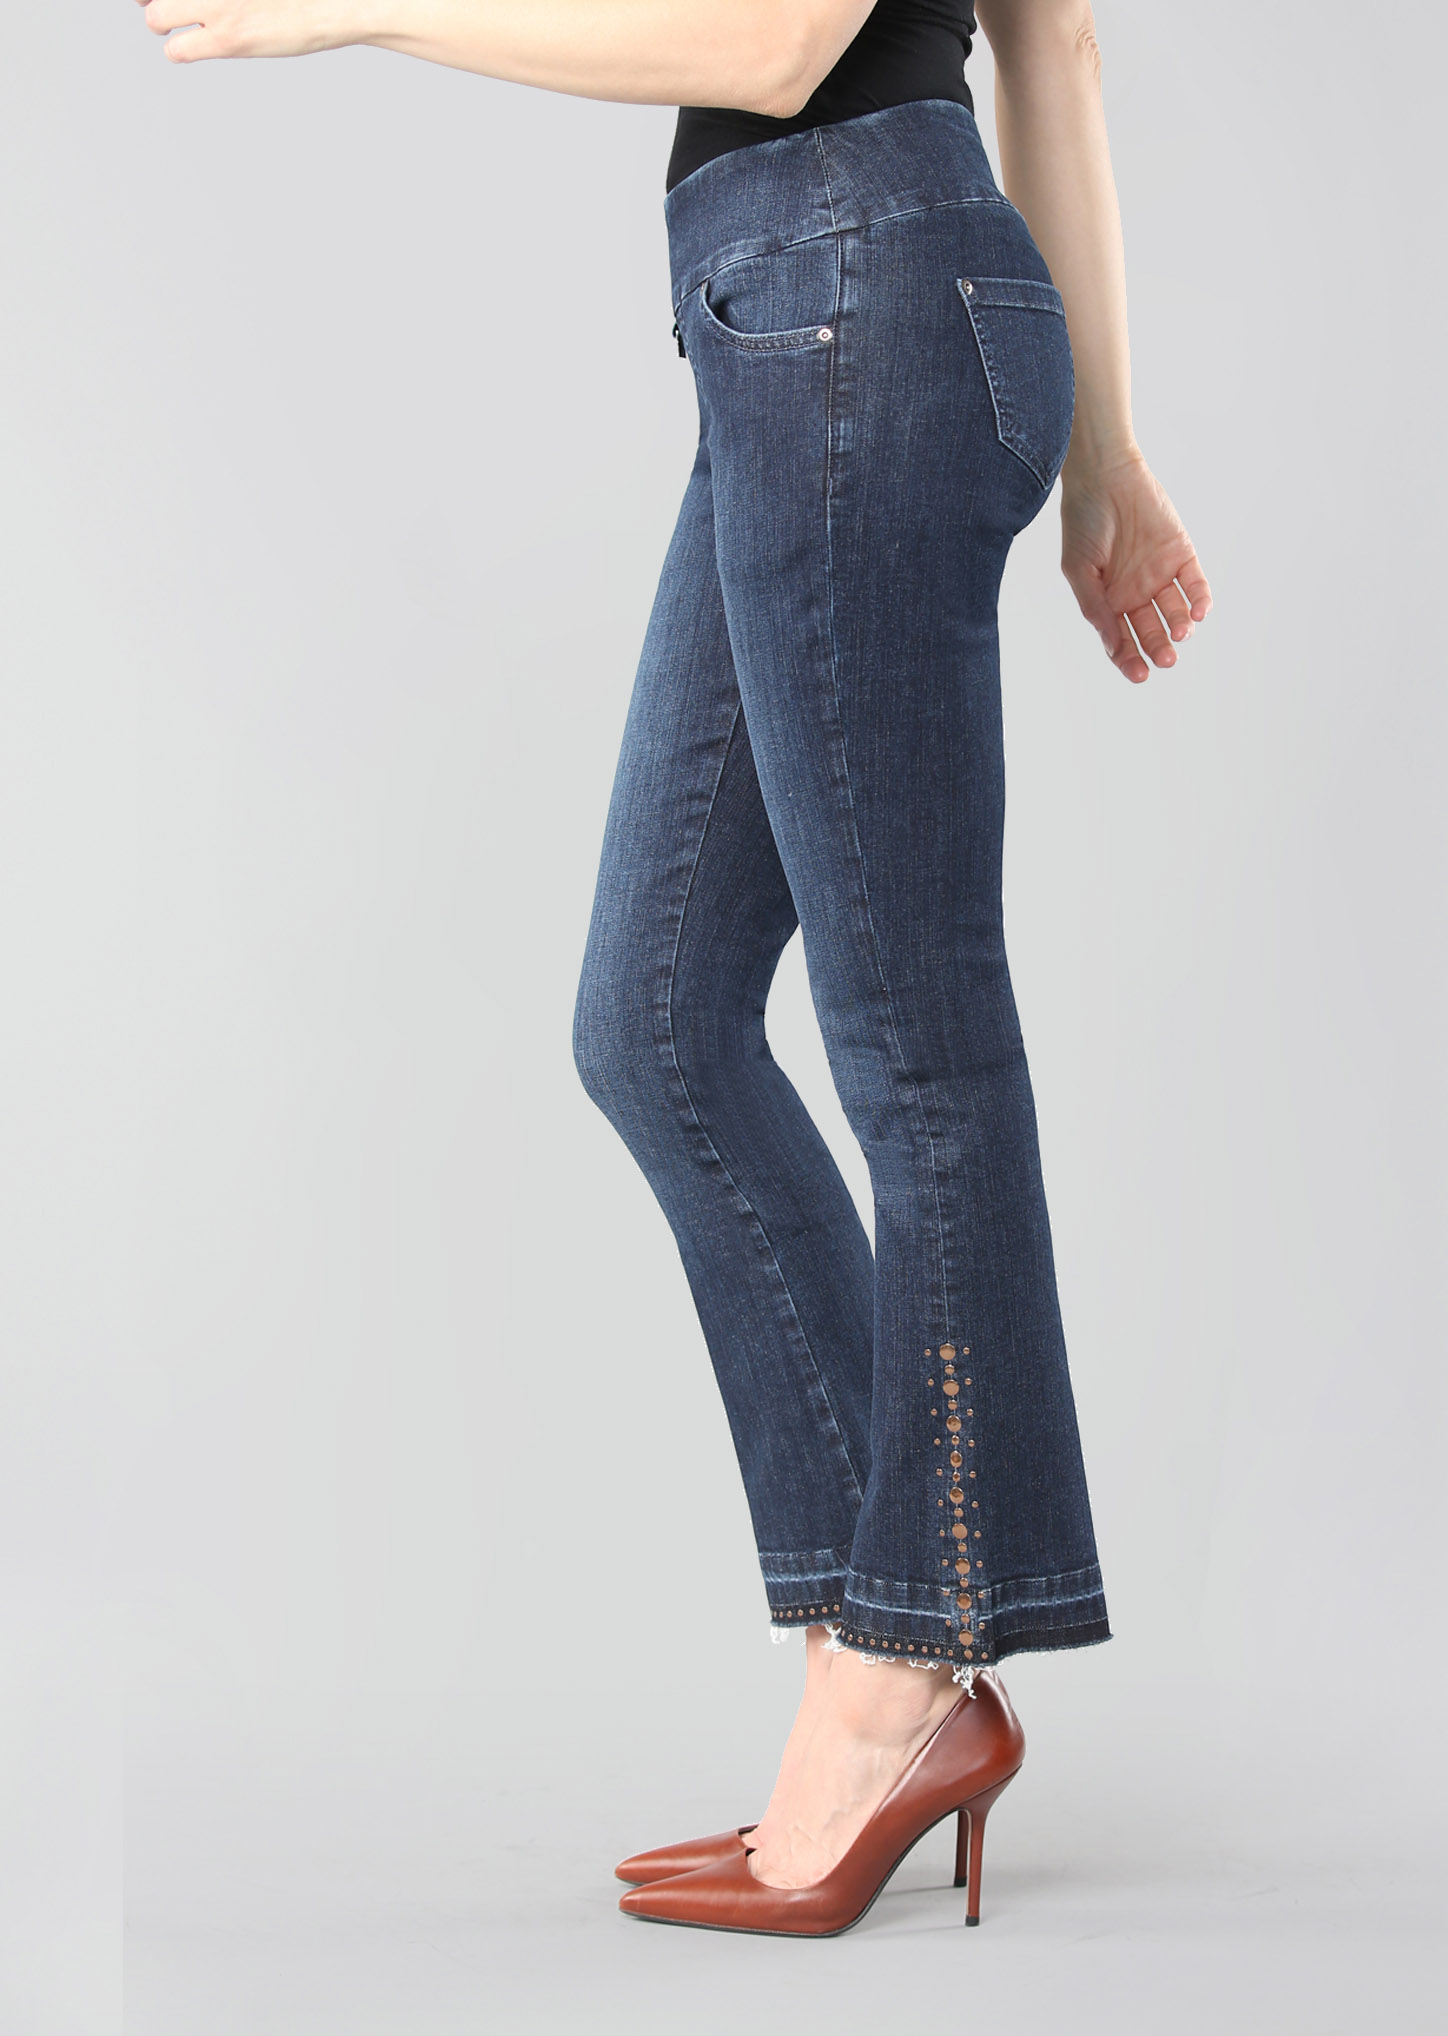 Lisette L. Mini Flare Jeans, Style 455631 Betty Denim Copper Studs Color Denim Blue